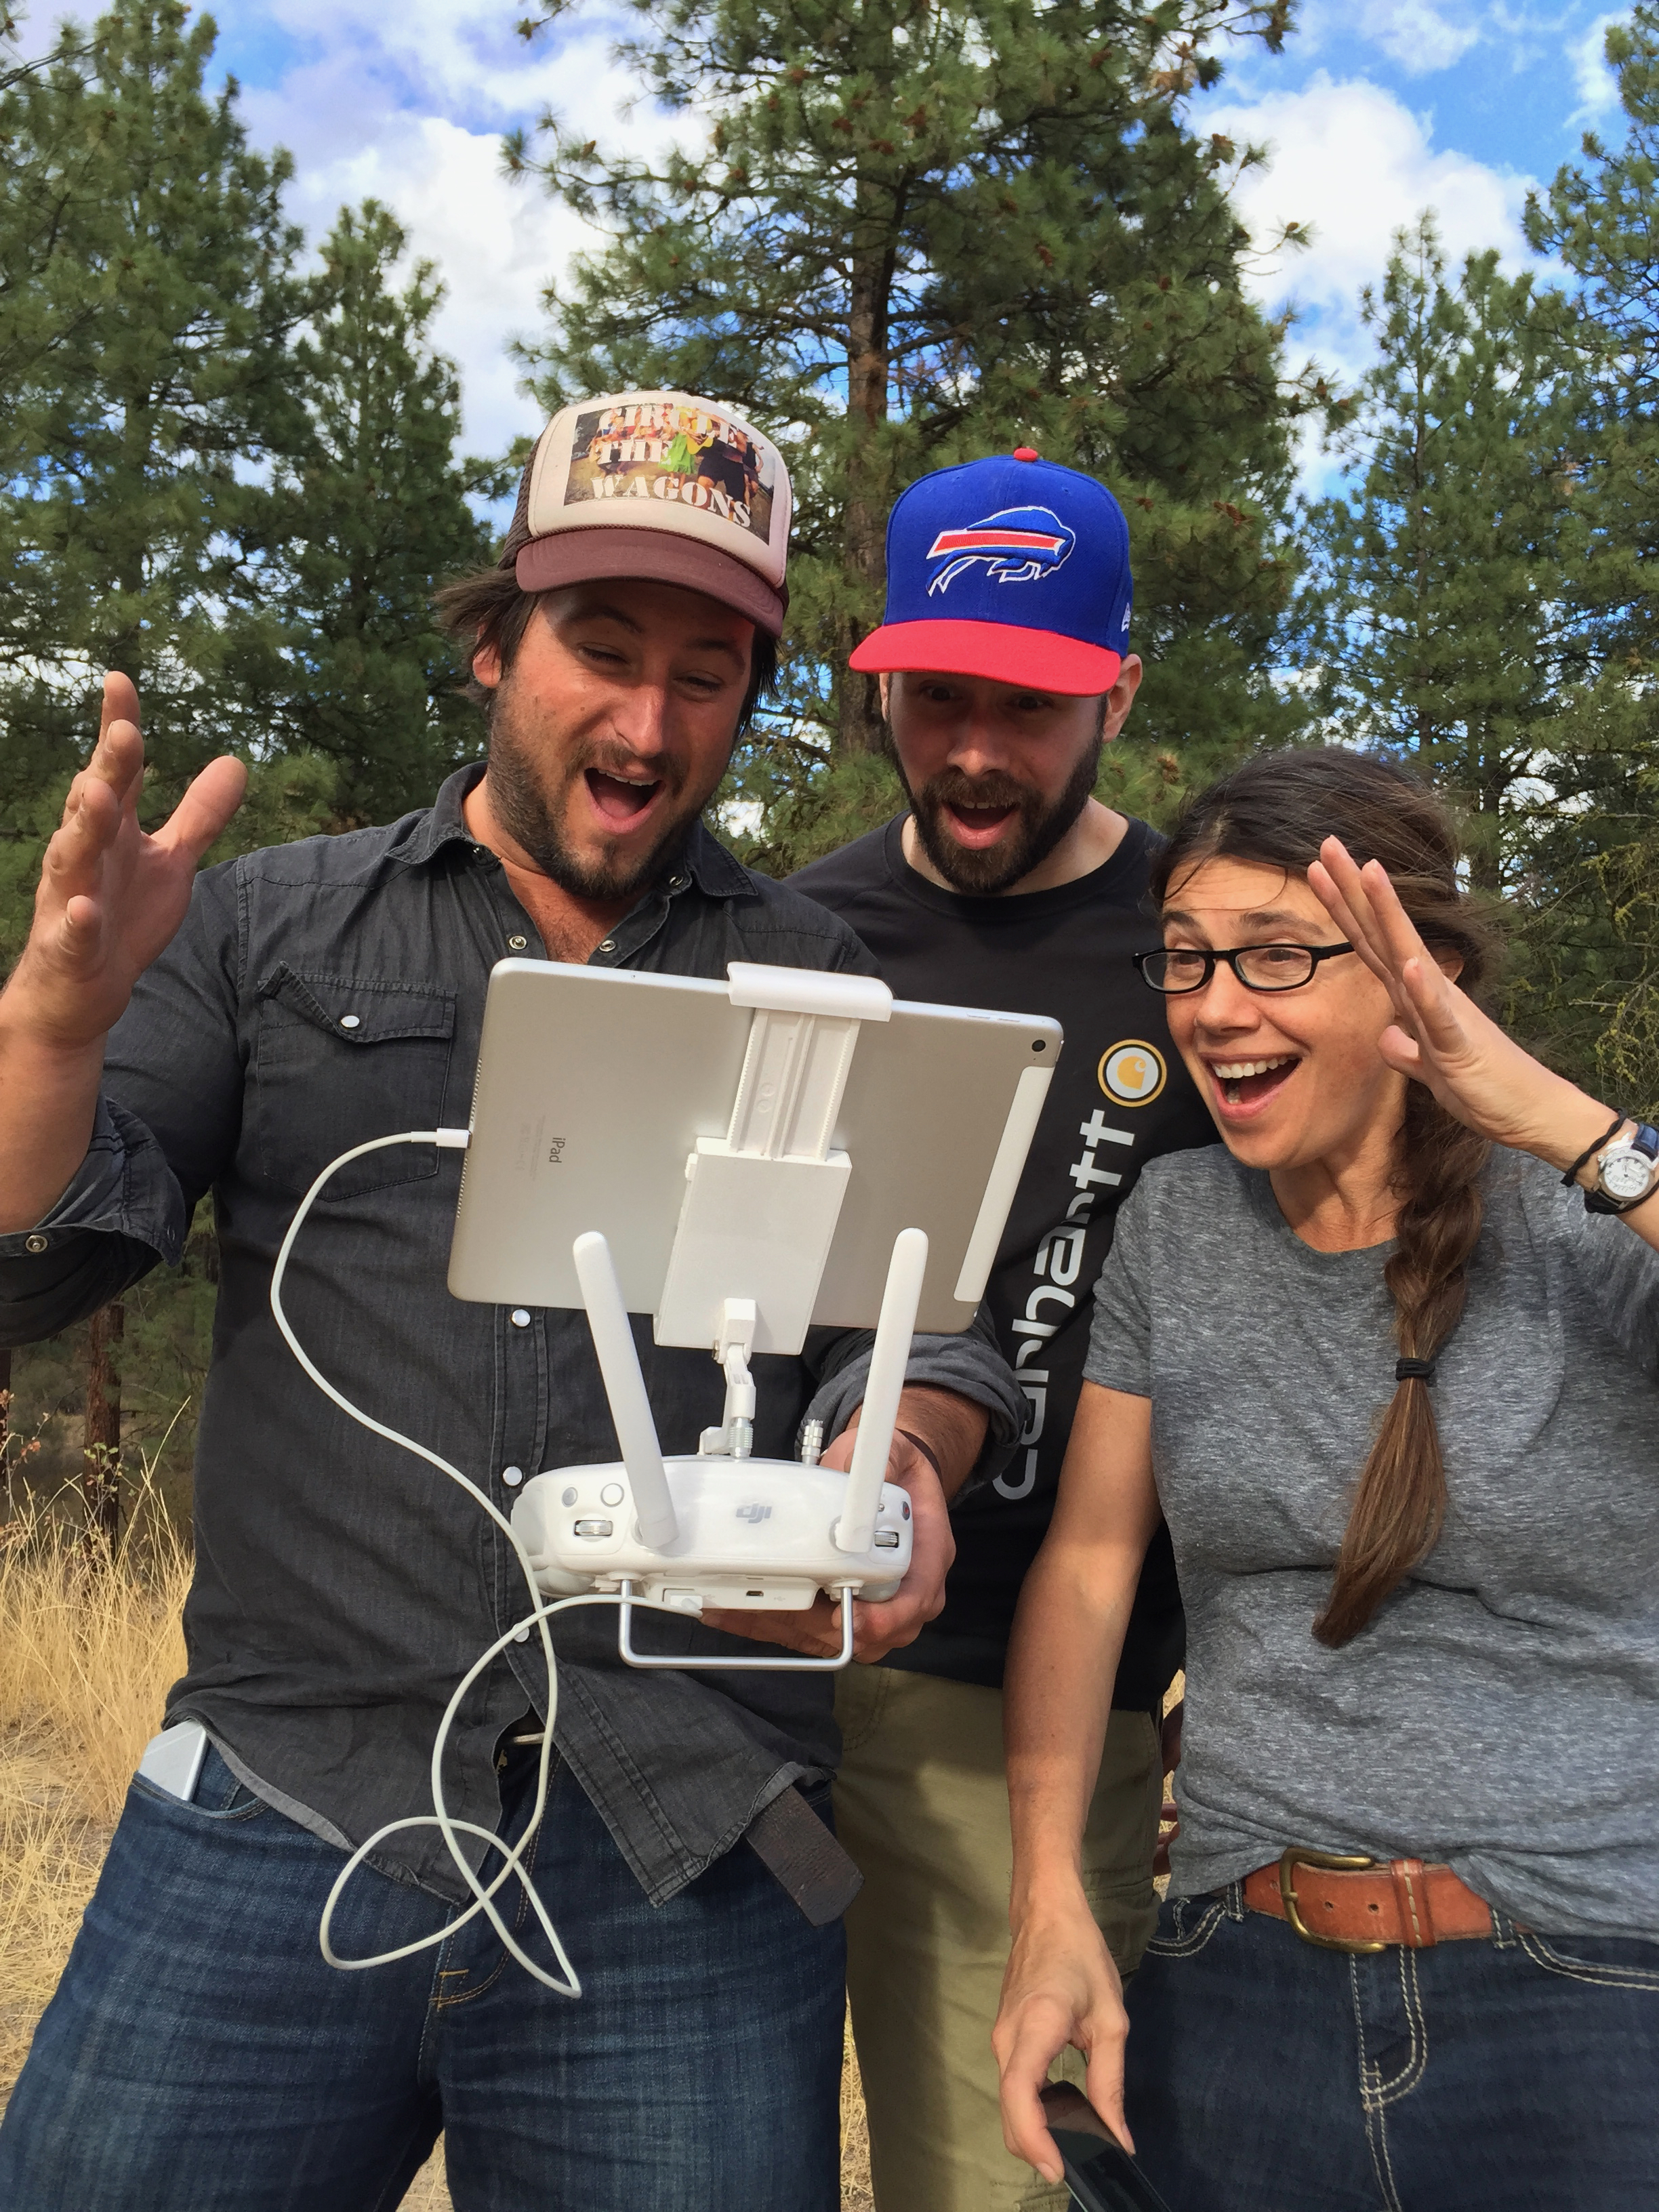 three people watching video for first time after recording in woods, excited